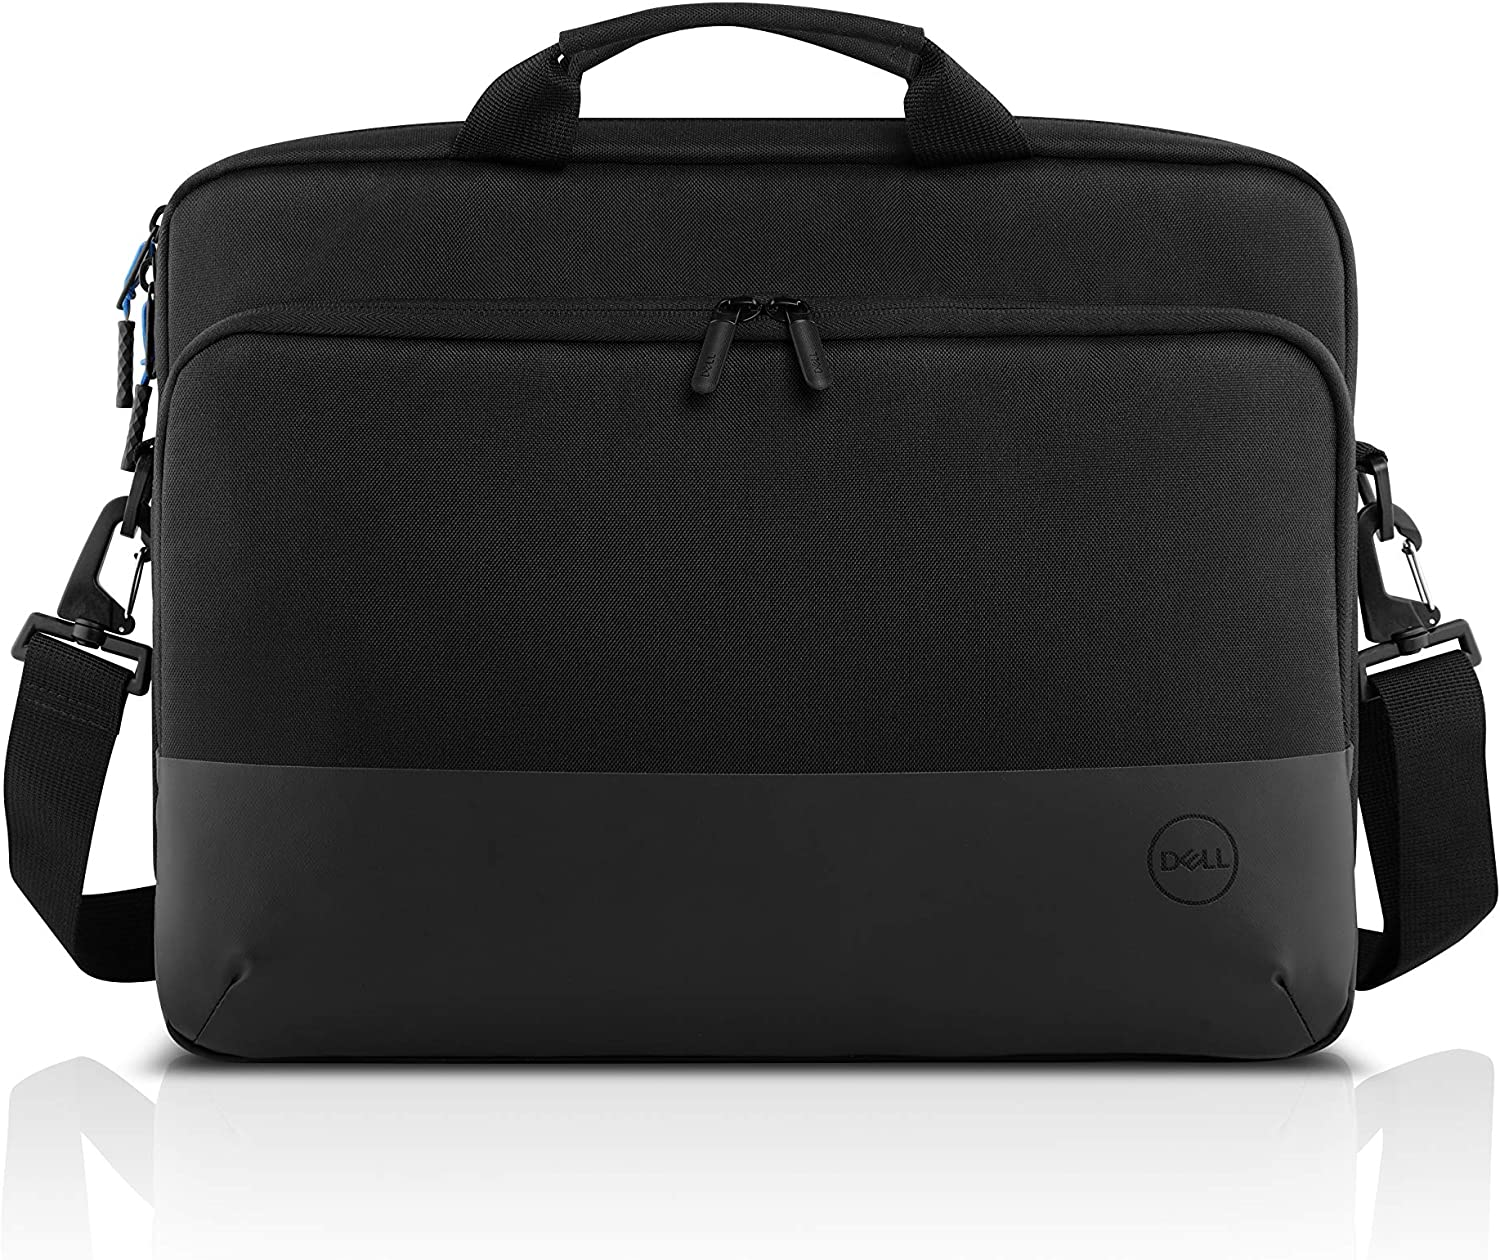 DELL PO1520CS Notebook Bag 38.1 cm (15 Inches) Black Briefcase Laptop Bag (Briefcase, 38.1 cm (15 Inches) Shoulder Strap, 549 g, Black)